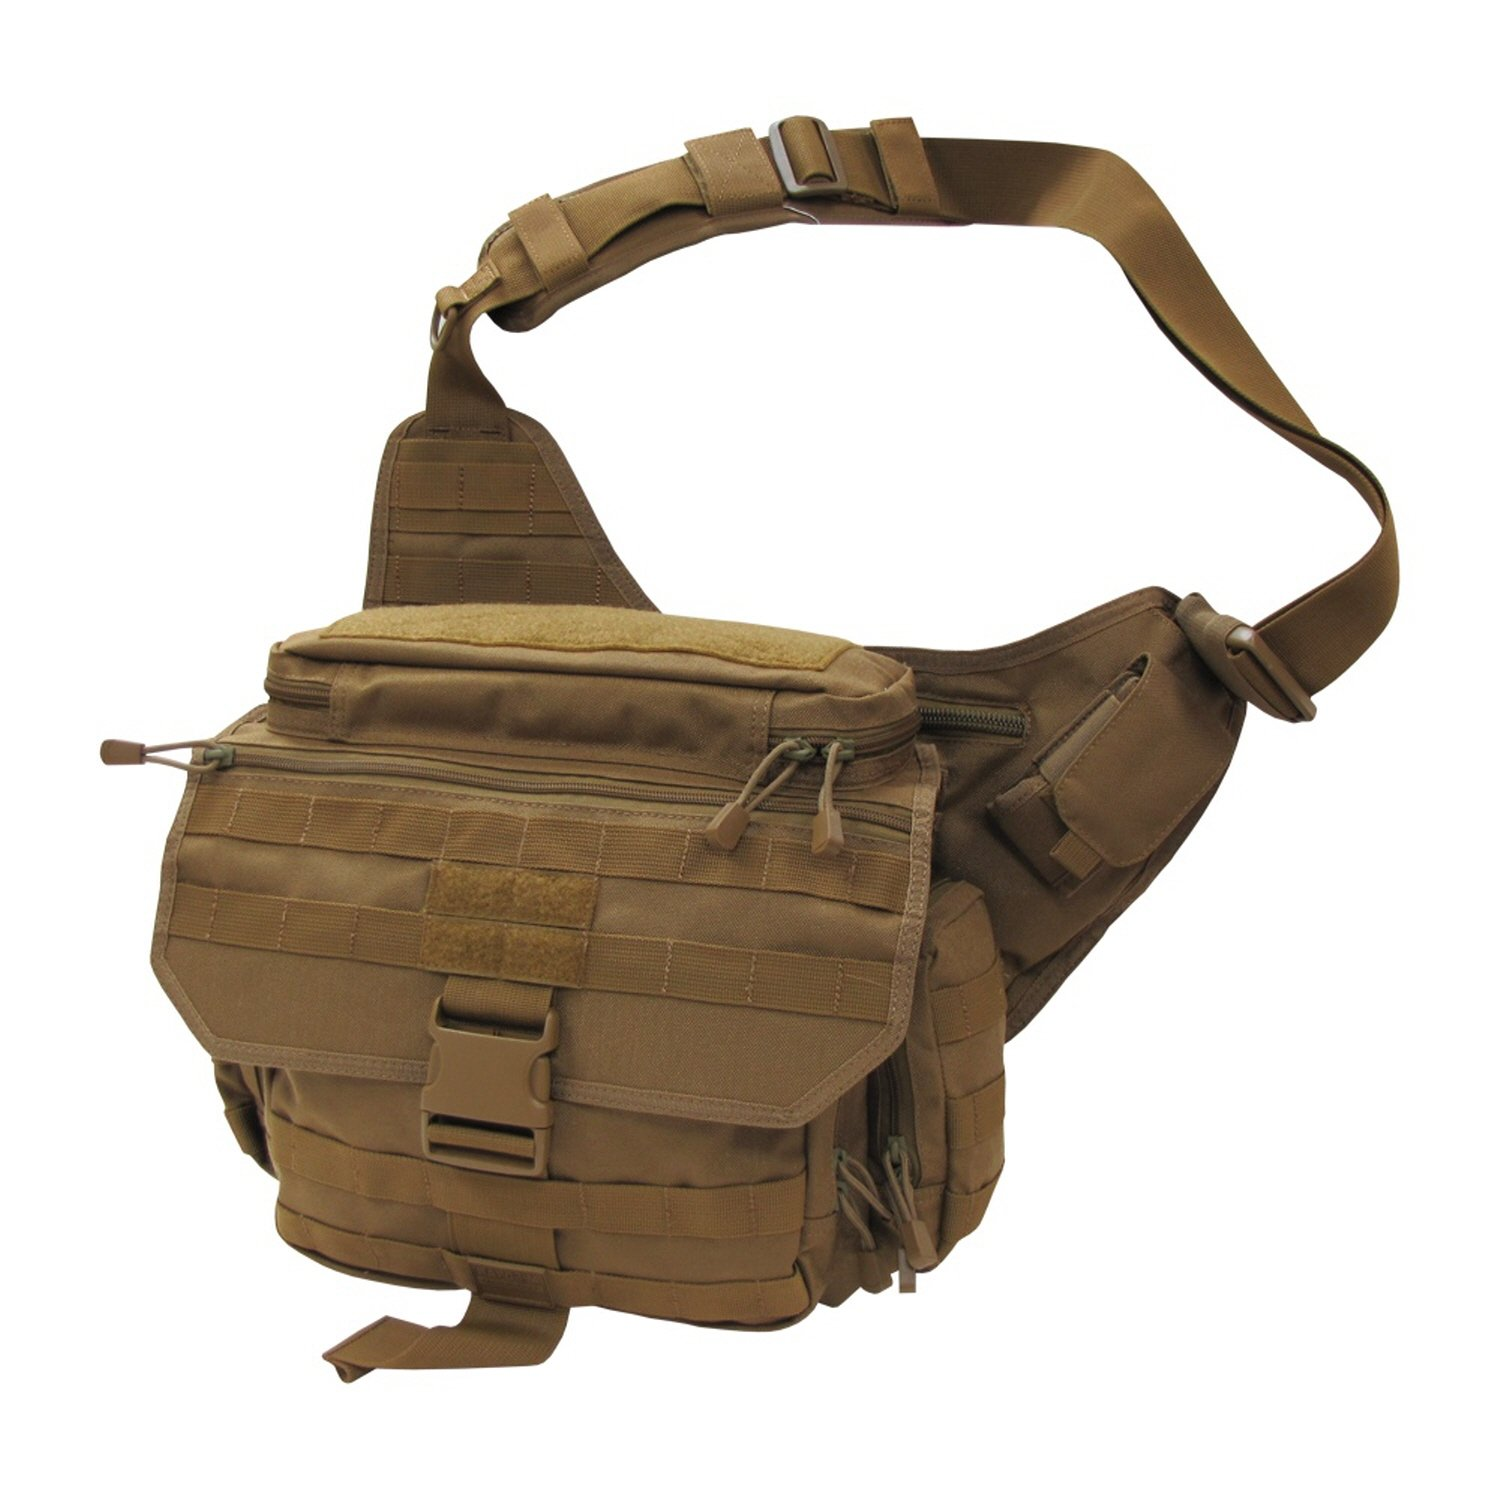 "RAPDOM Tactical Messenger Bag (Coyote, 14""W x 12""H x 6.5"" D)"